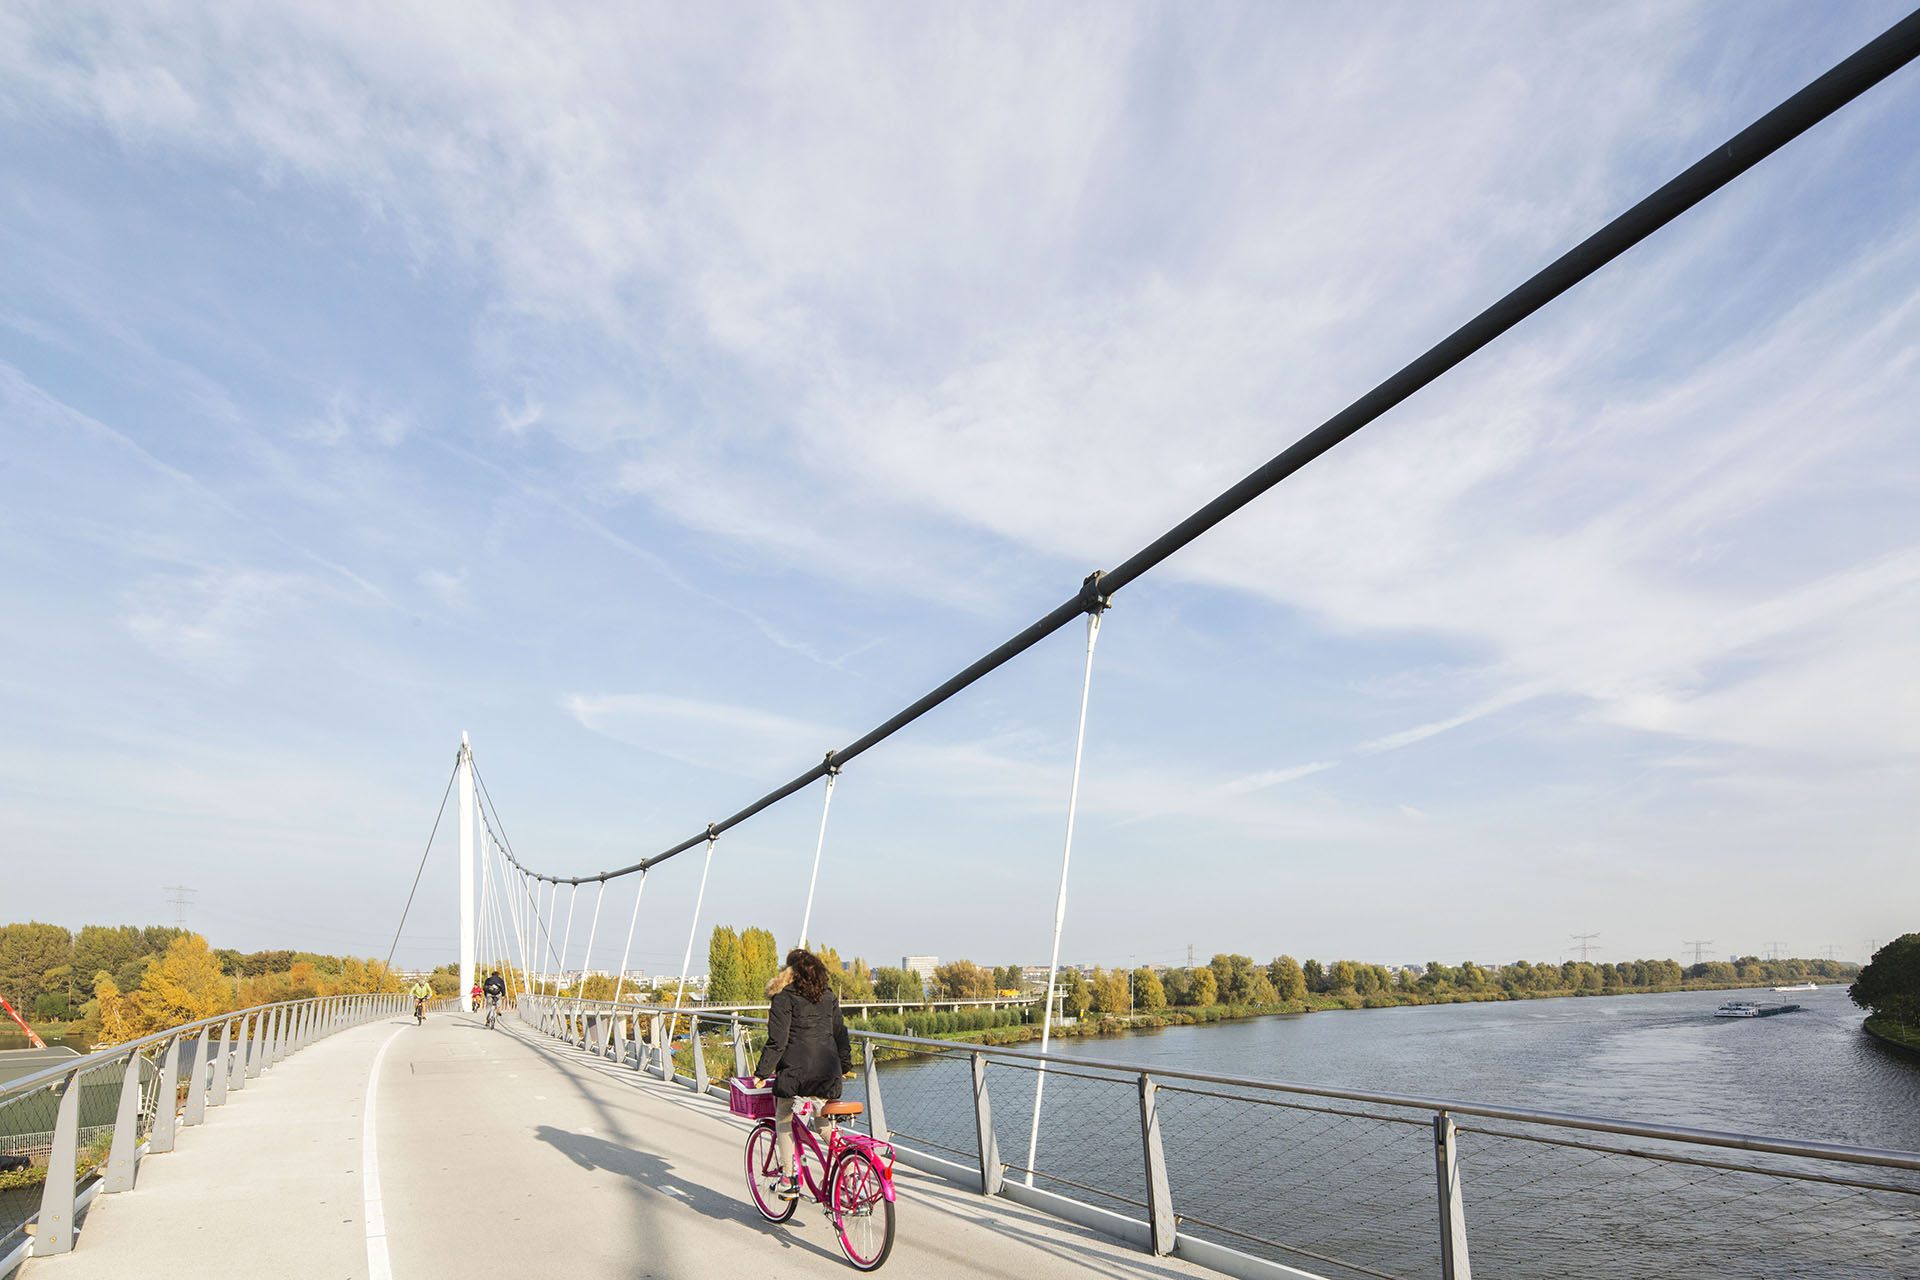 01-marc-koehler-amsterdam-simon-bosch-superlofts-architecture-architectuur- nescio-bridge-brug